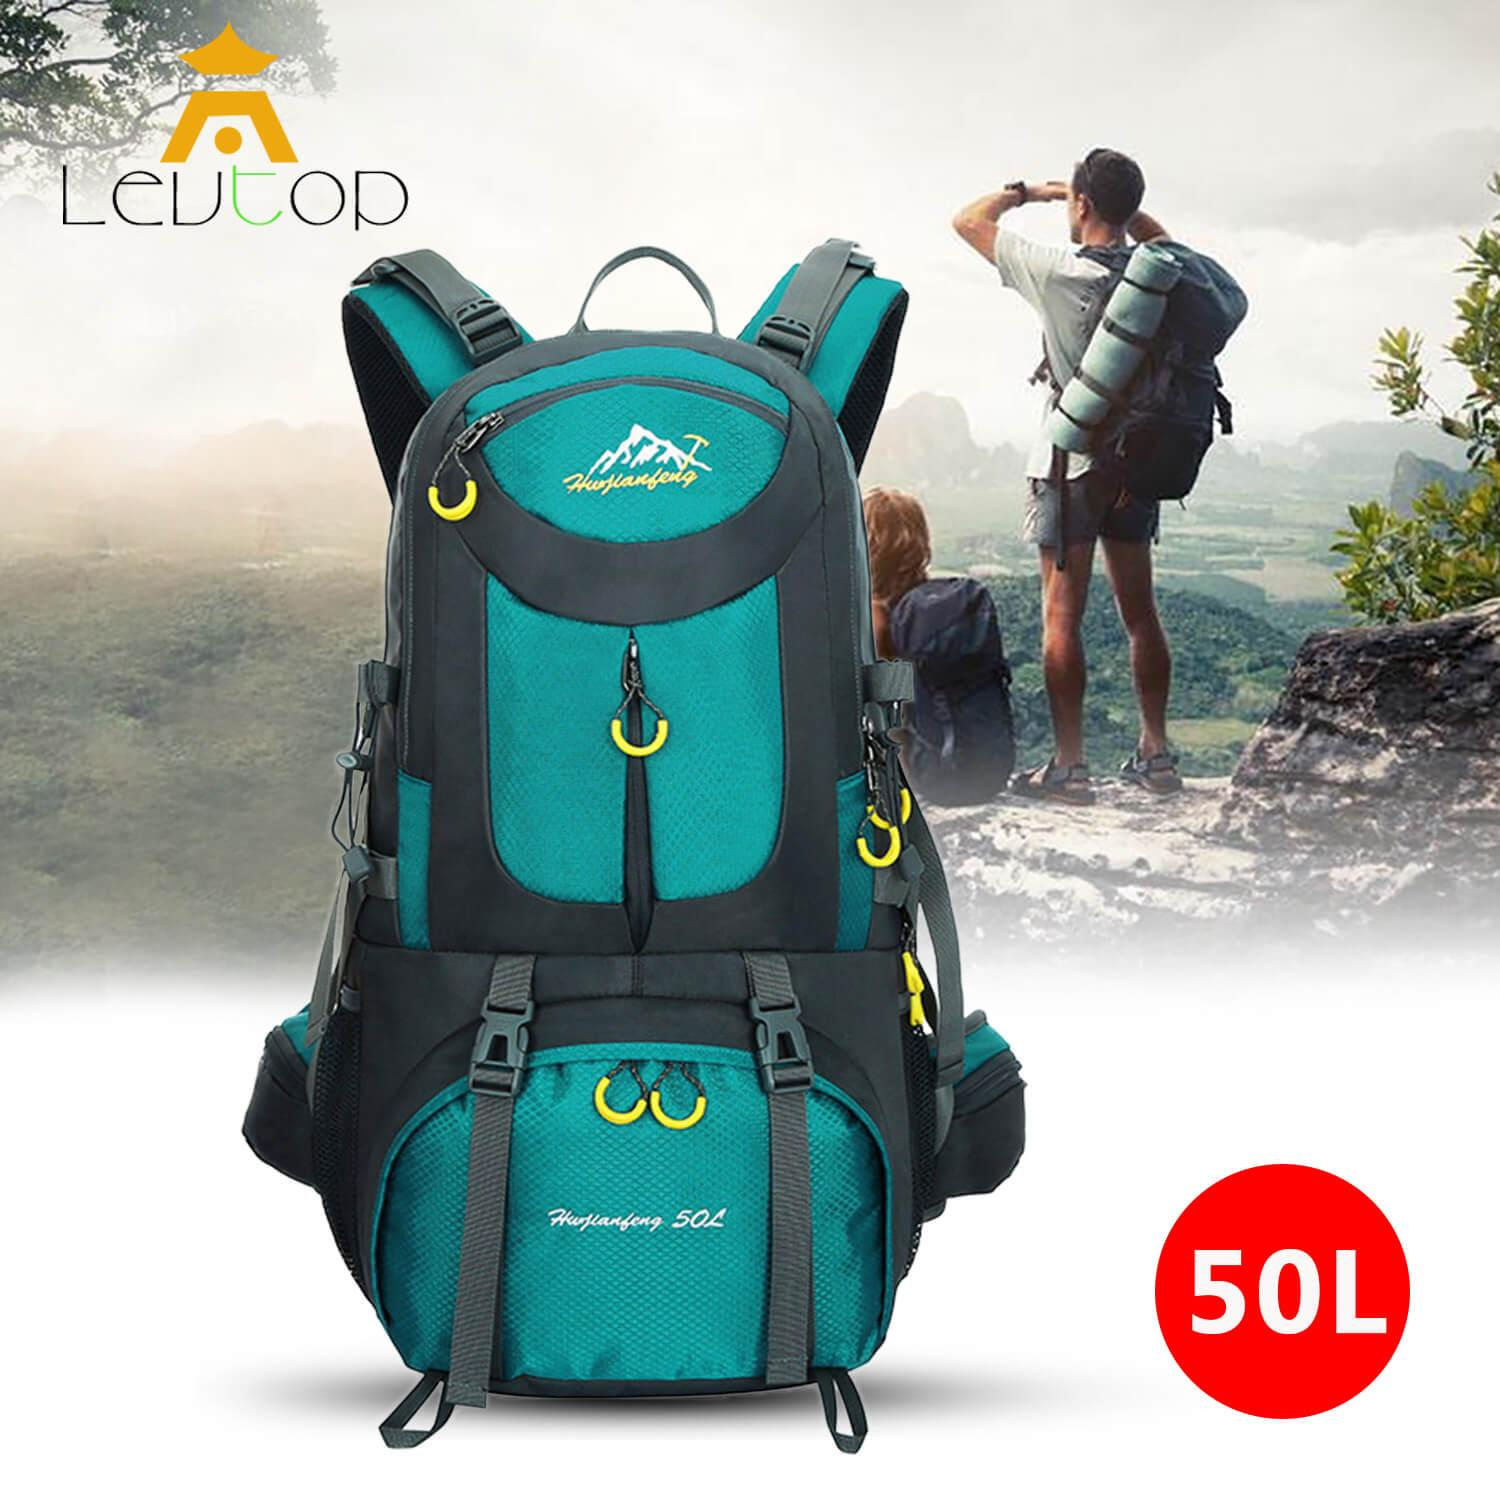 58205b1939 LEVTOP Outdoor Hiking Backpack Sport Camping Travel Shoulder Pack Bag Water  Resistant Mountaineering Climbing Backpacking Trekking